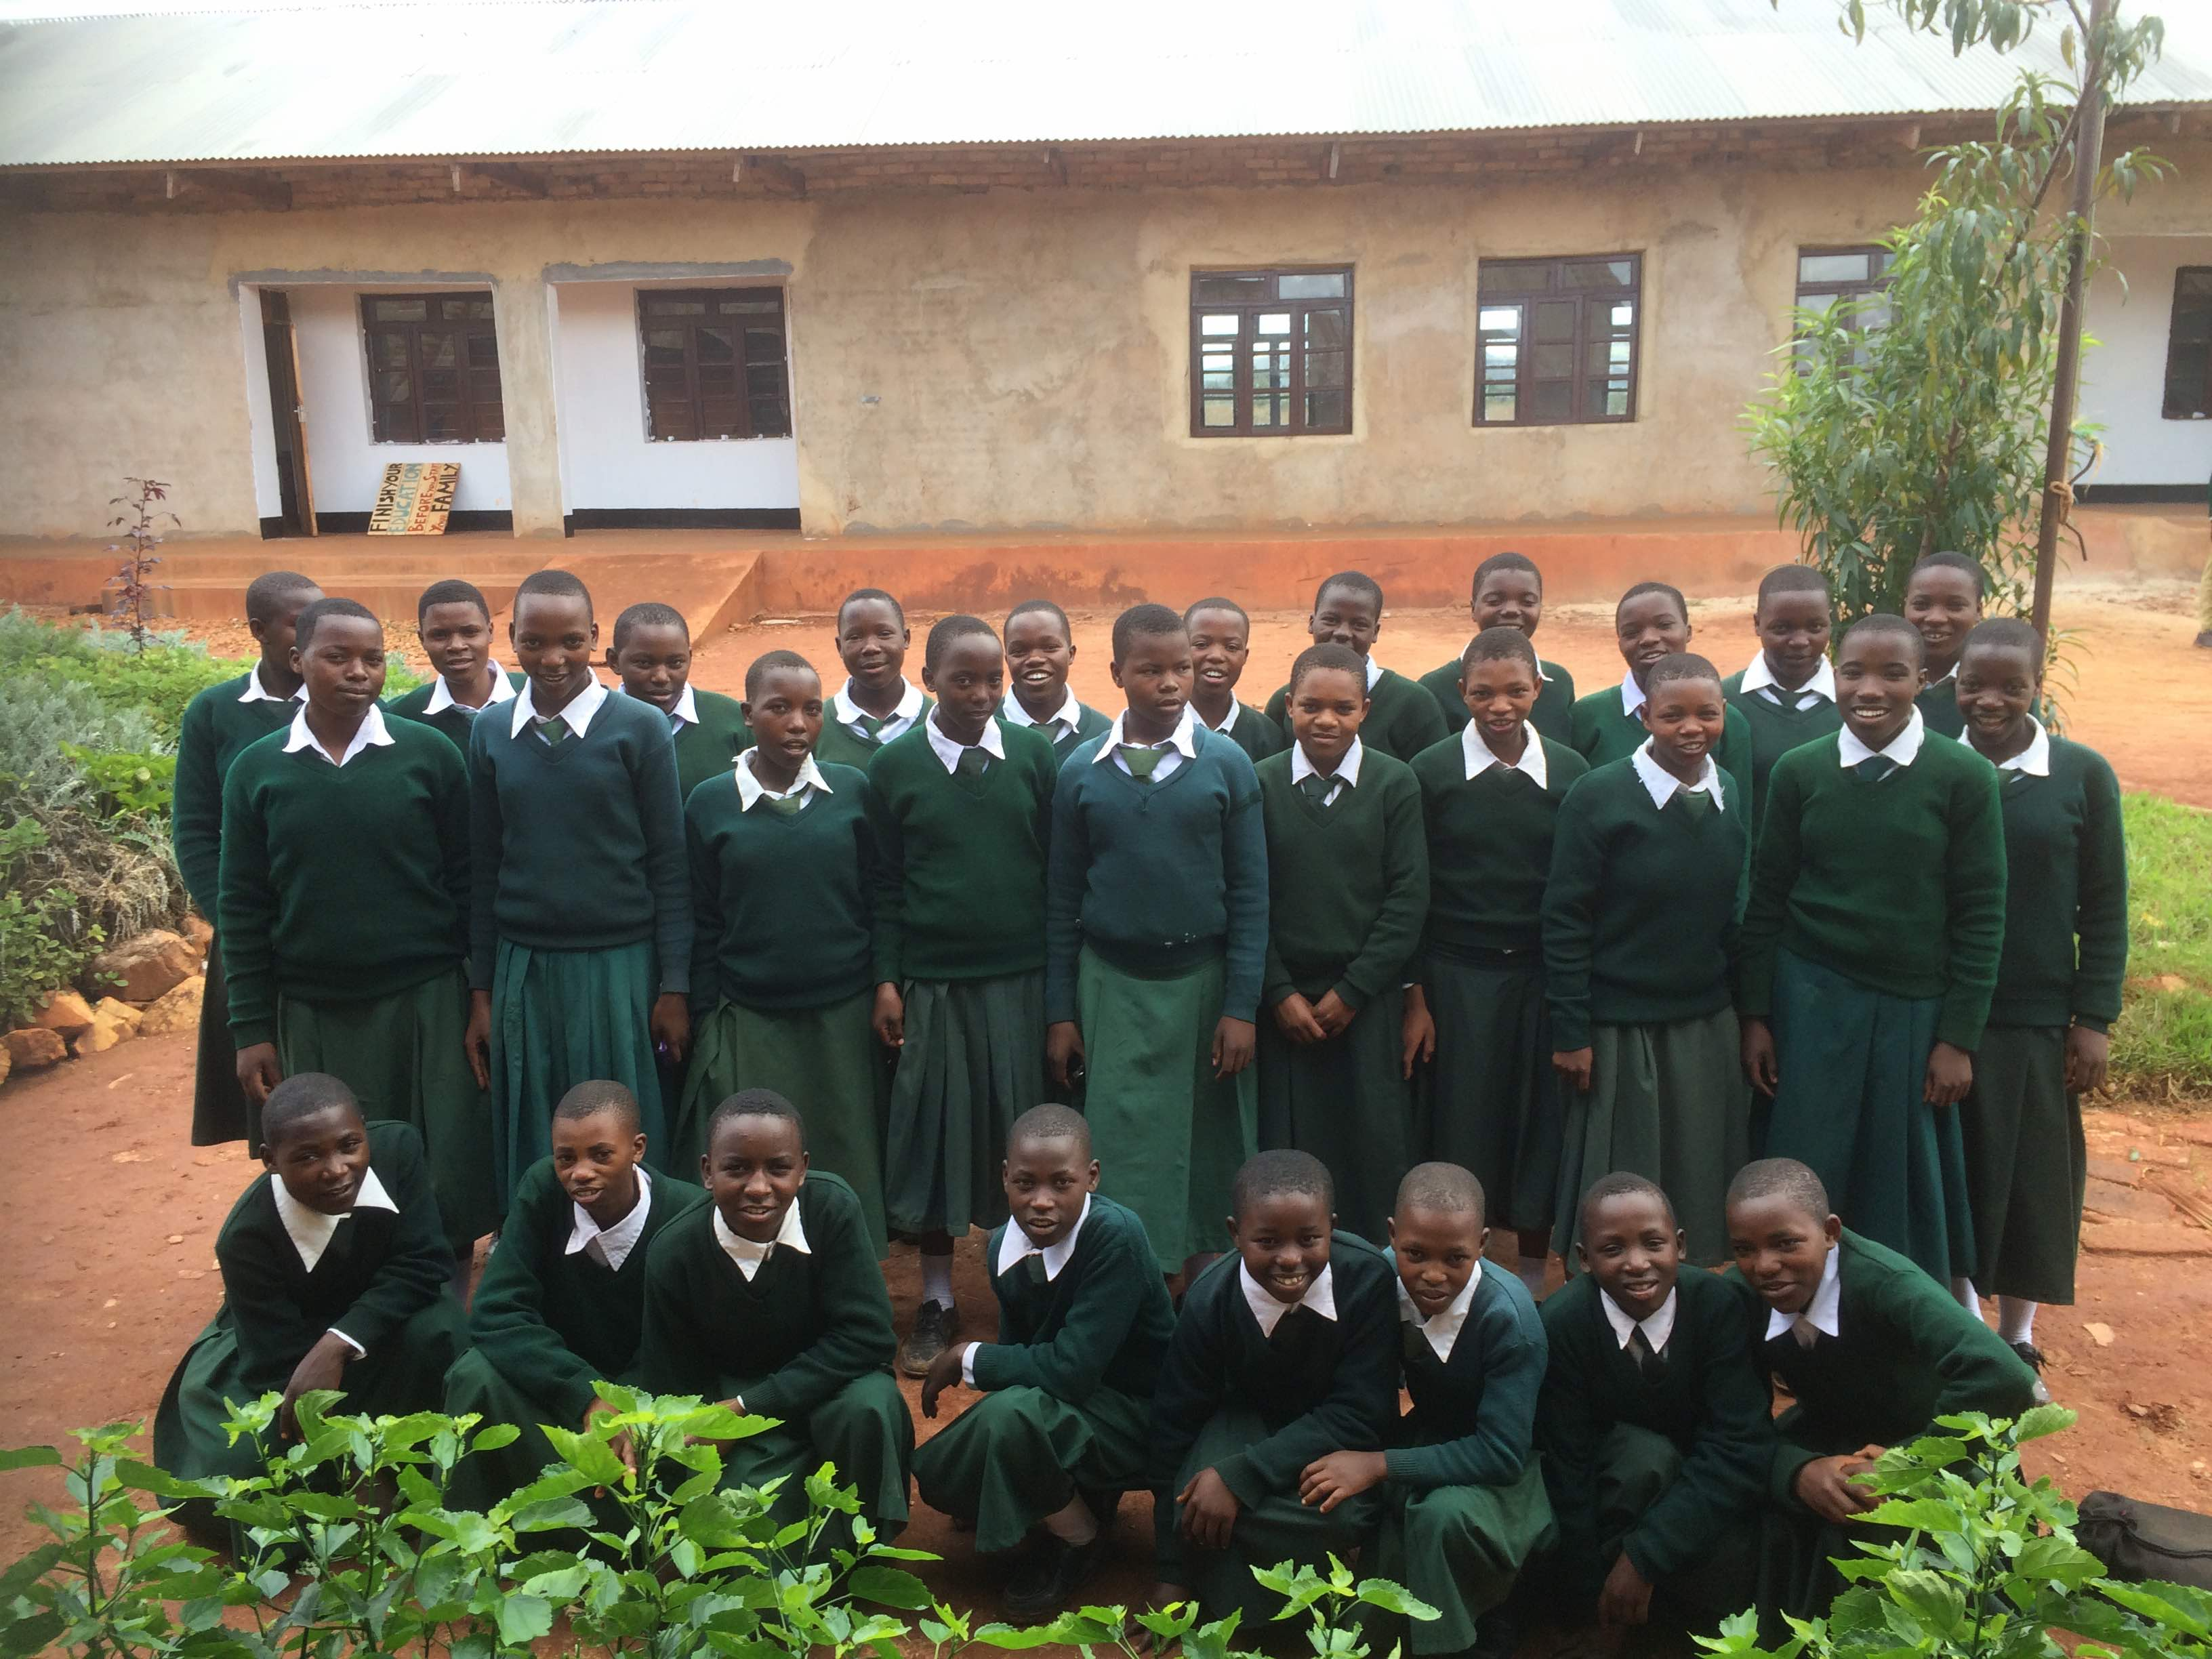 Mnyigumba Secondary School Girls Dormitory